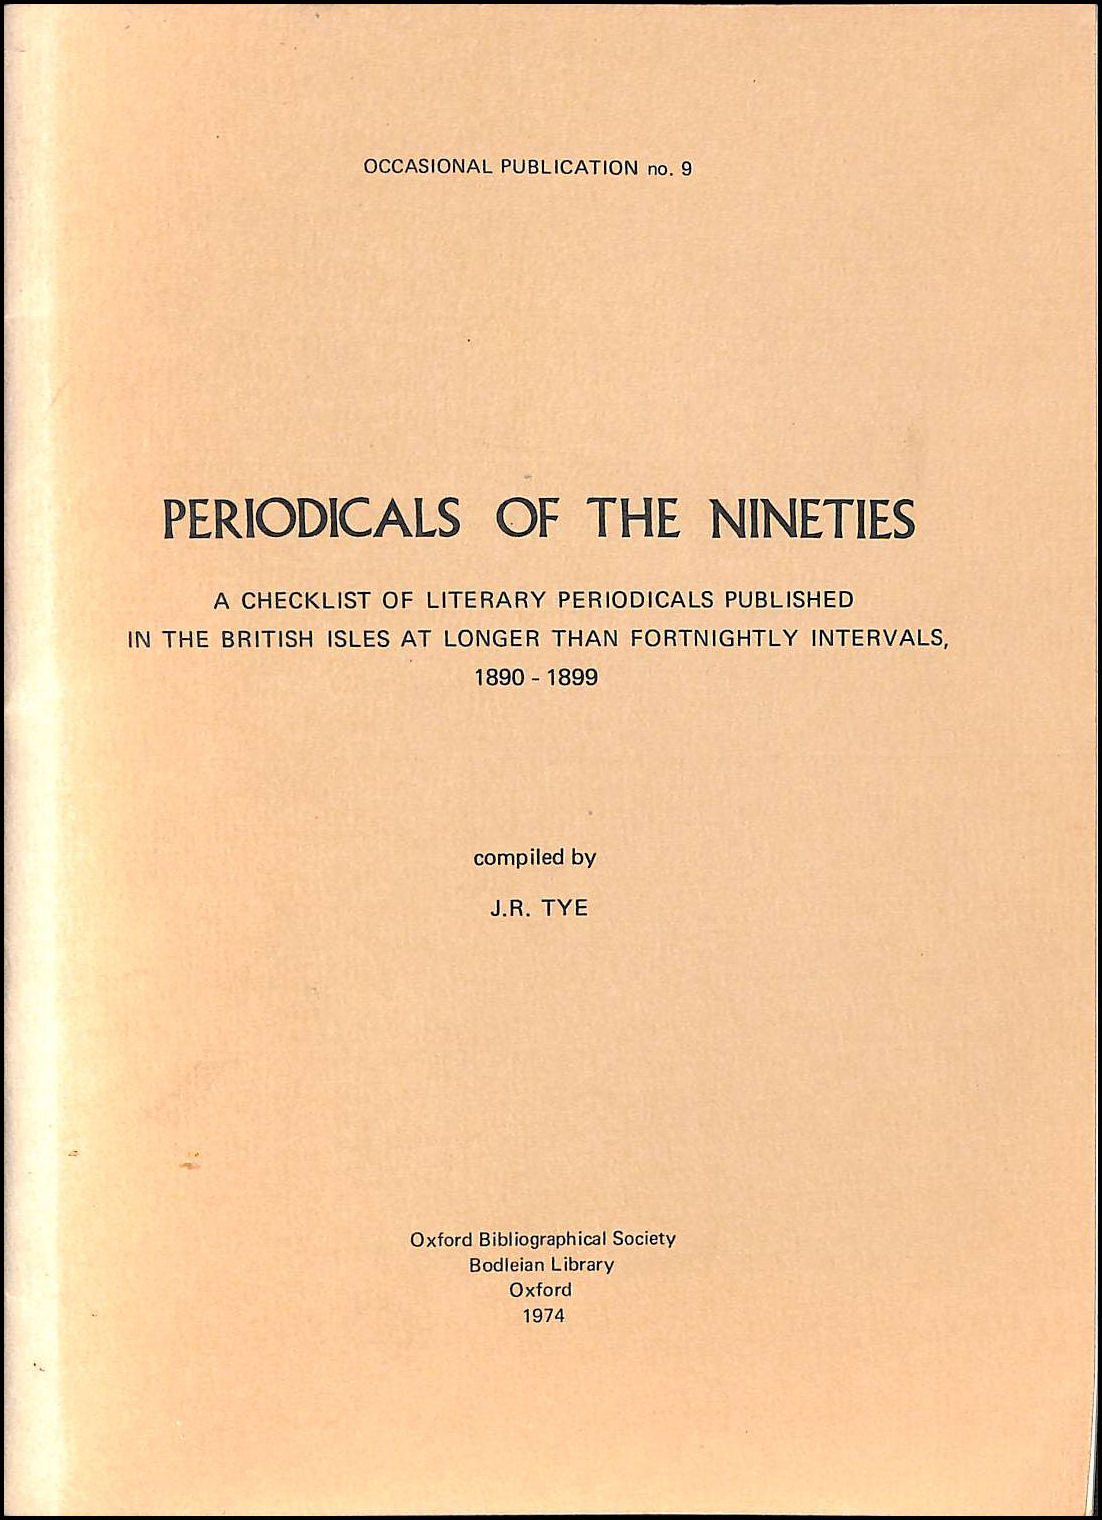 Periodicals of the Nineties: A Checklist of Literary Periodicals Published in the British Isles at Longer Than Fortnightly Intervals, 1890-99 (Occasional publication / Oxford Bibliographical Society), Tye, J.R. [Editor]